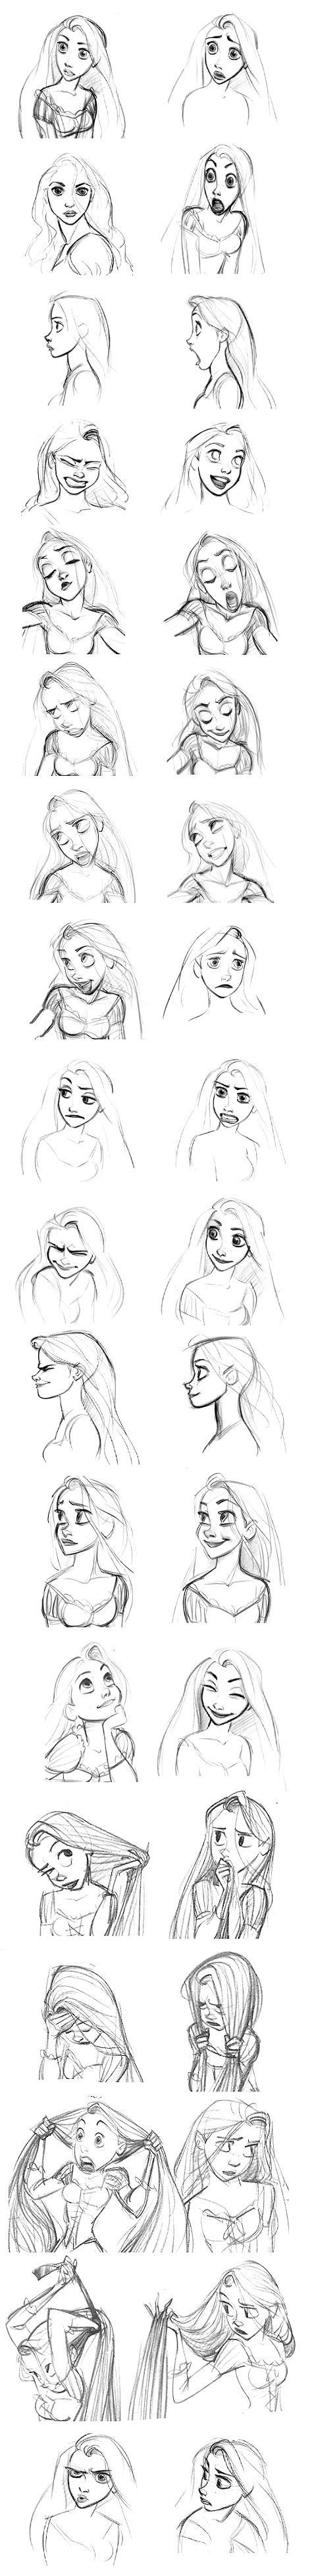 "Disney art tutorial; facial expressions drawing reference // ""Rapunzel (Tangled)"" Expressions 